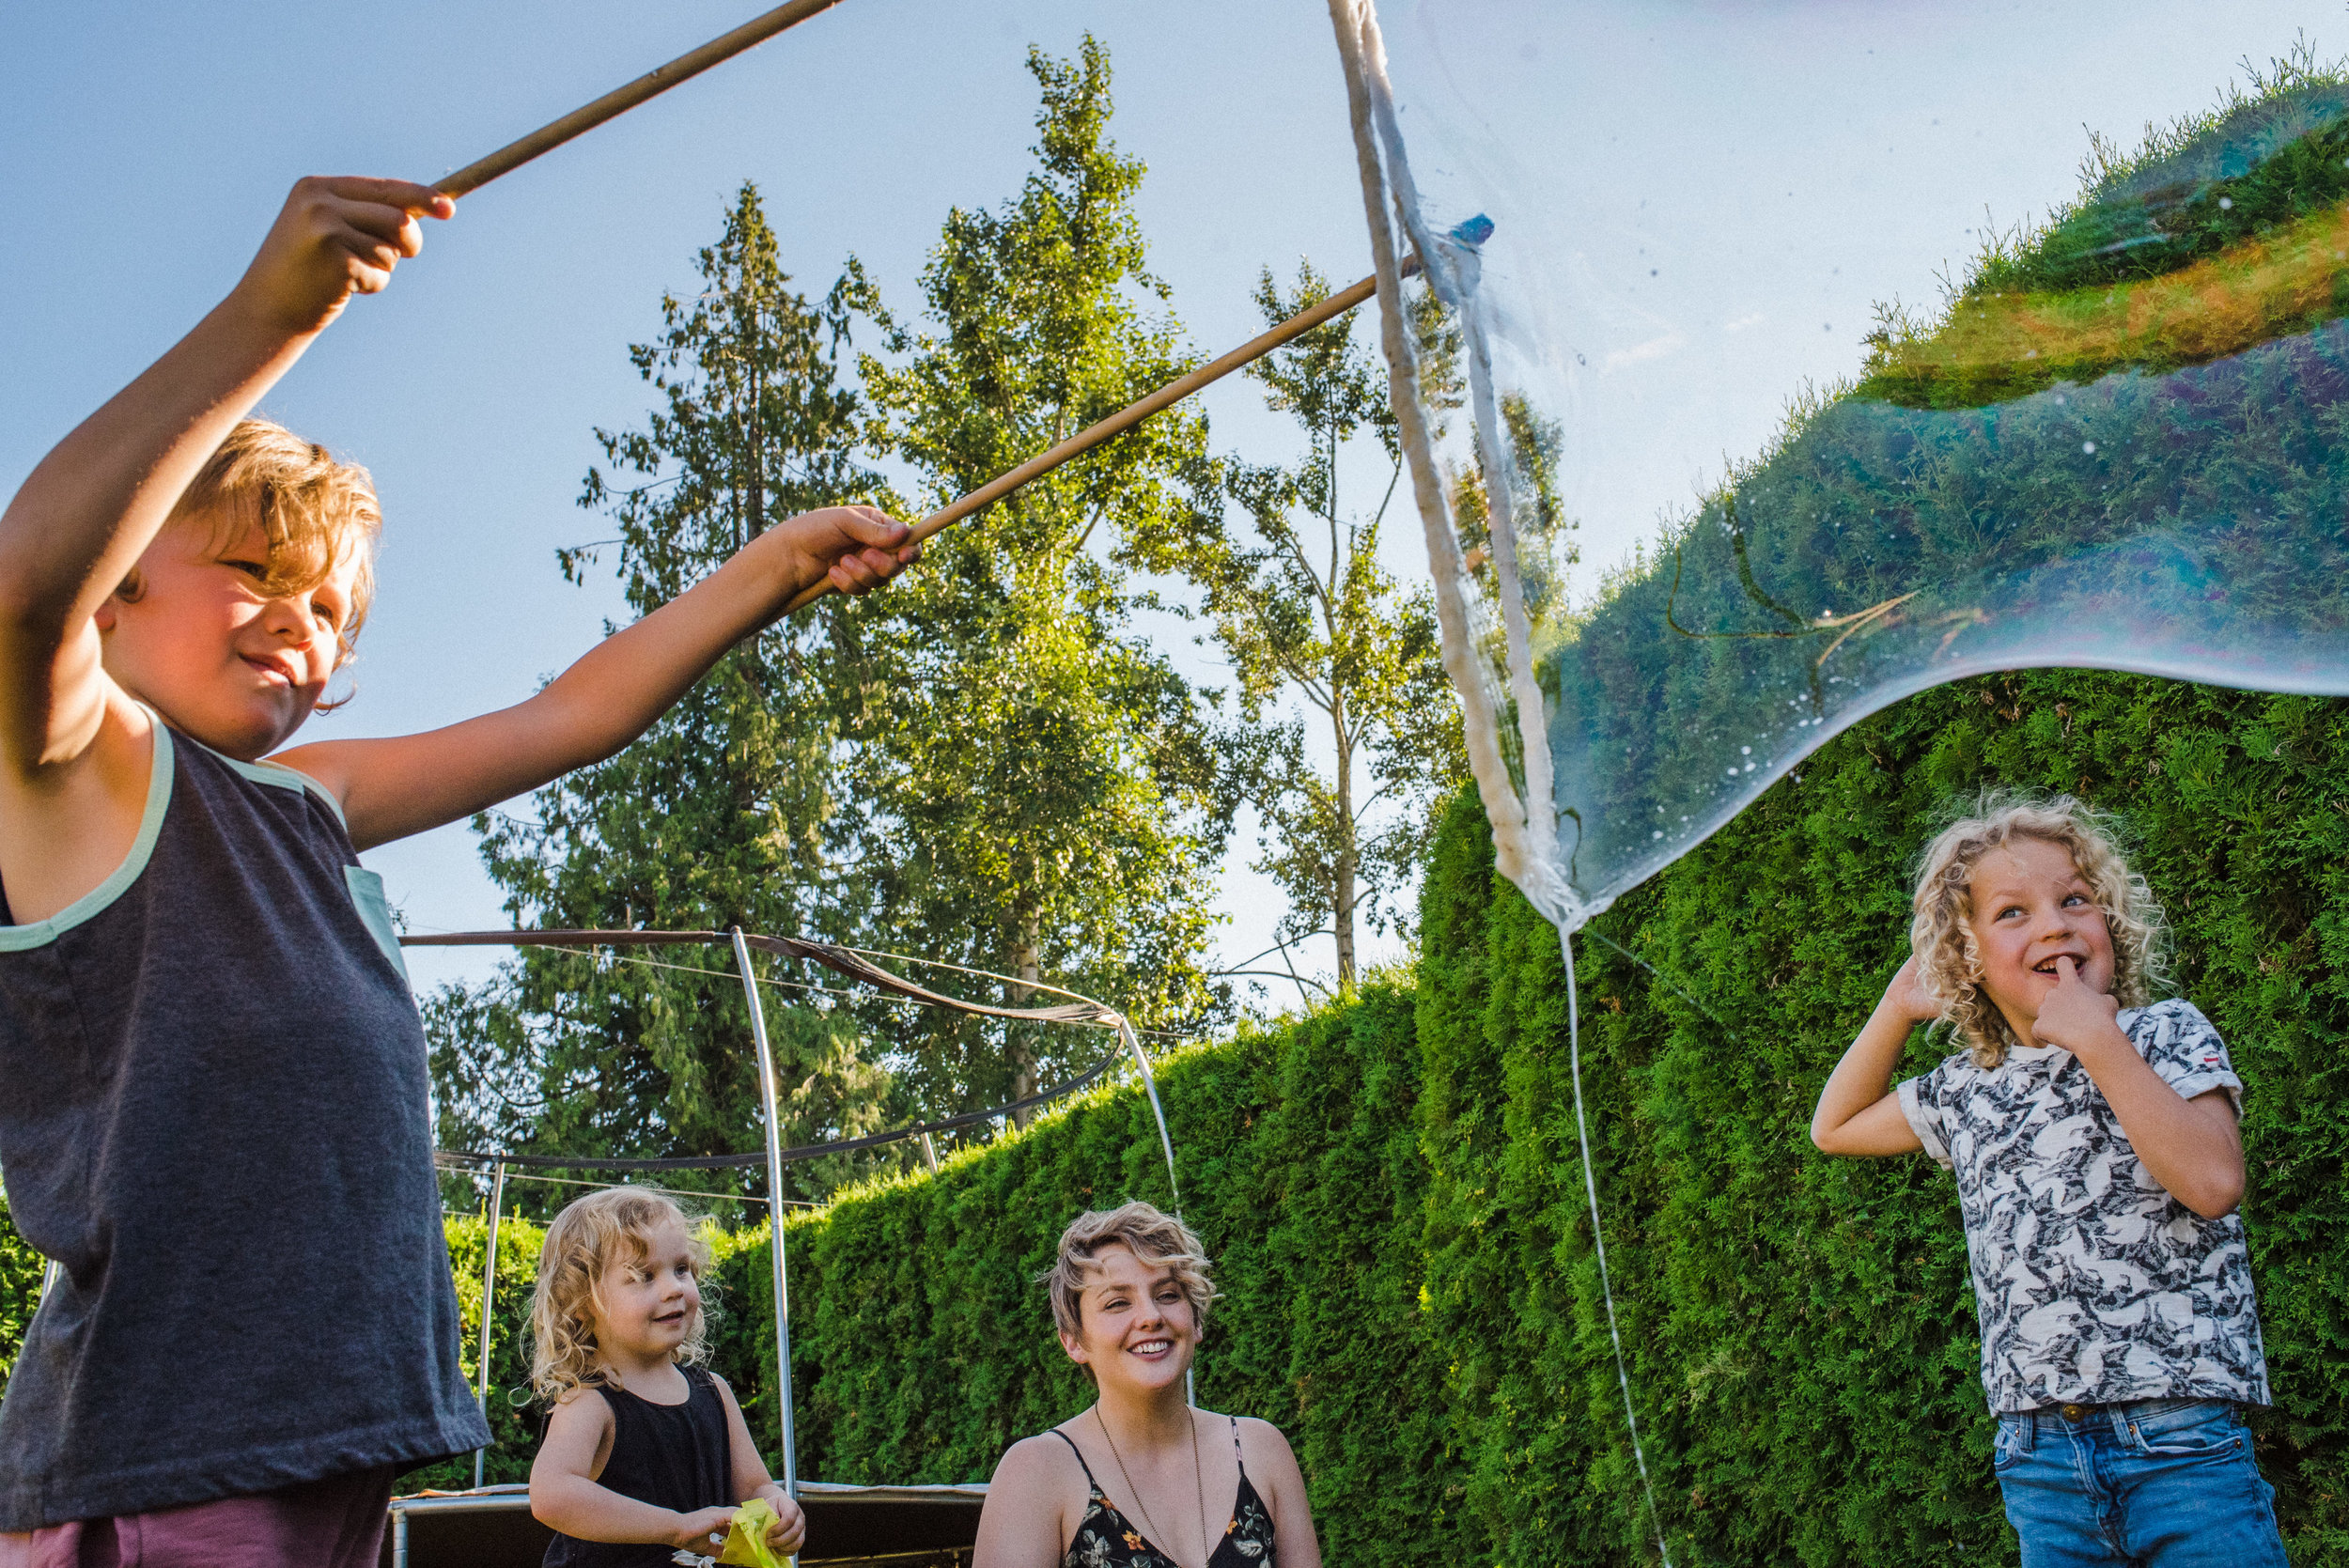 Three siblings trying to make big bubbles with rope and rods while their mom looks on smiling.